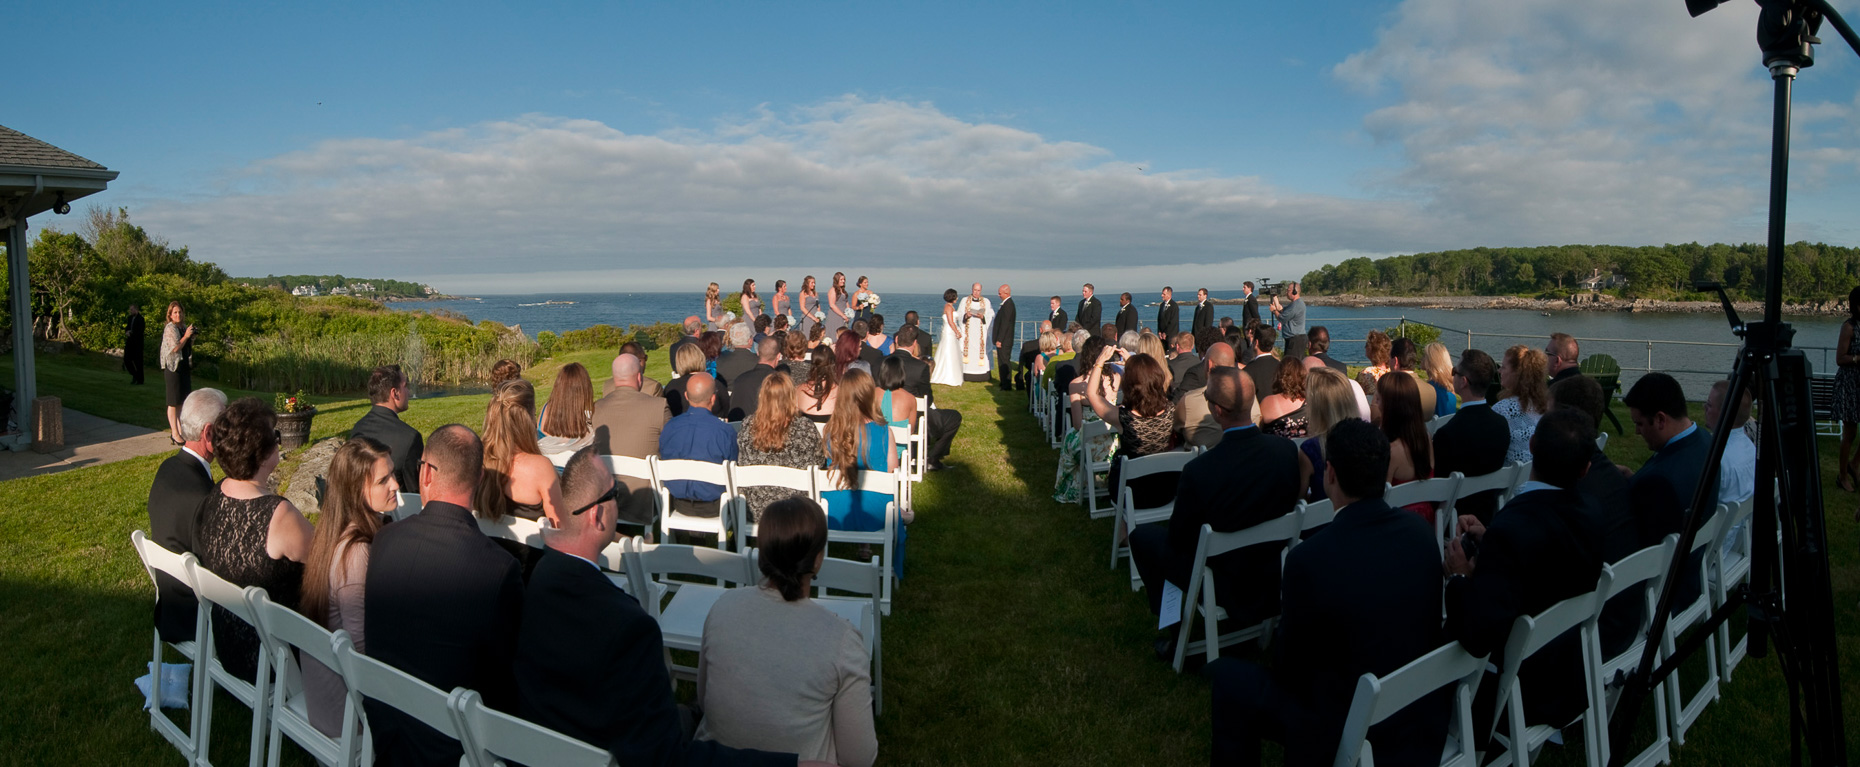 Thomas_Mindy_Wedding_348.JPG